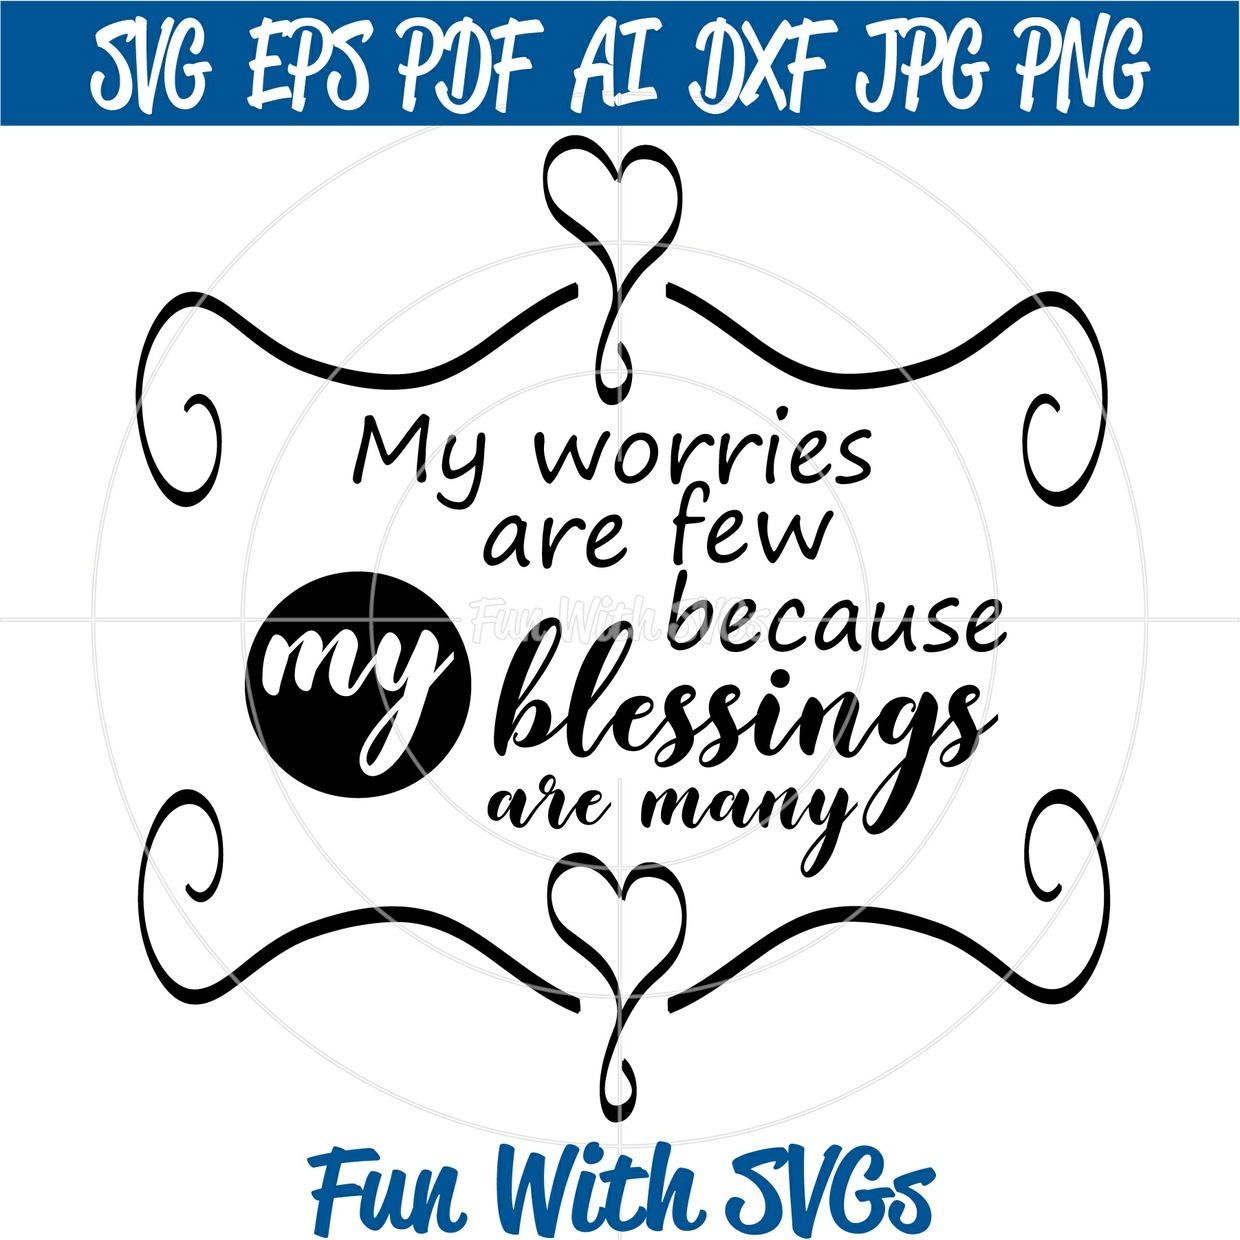 My Worries Are Few Because My Blessings Are Many, SVG Files, Cricut, Silhouette